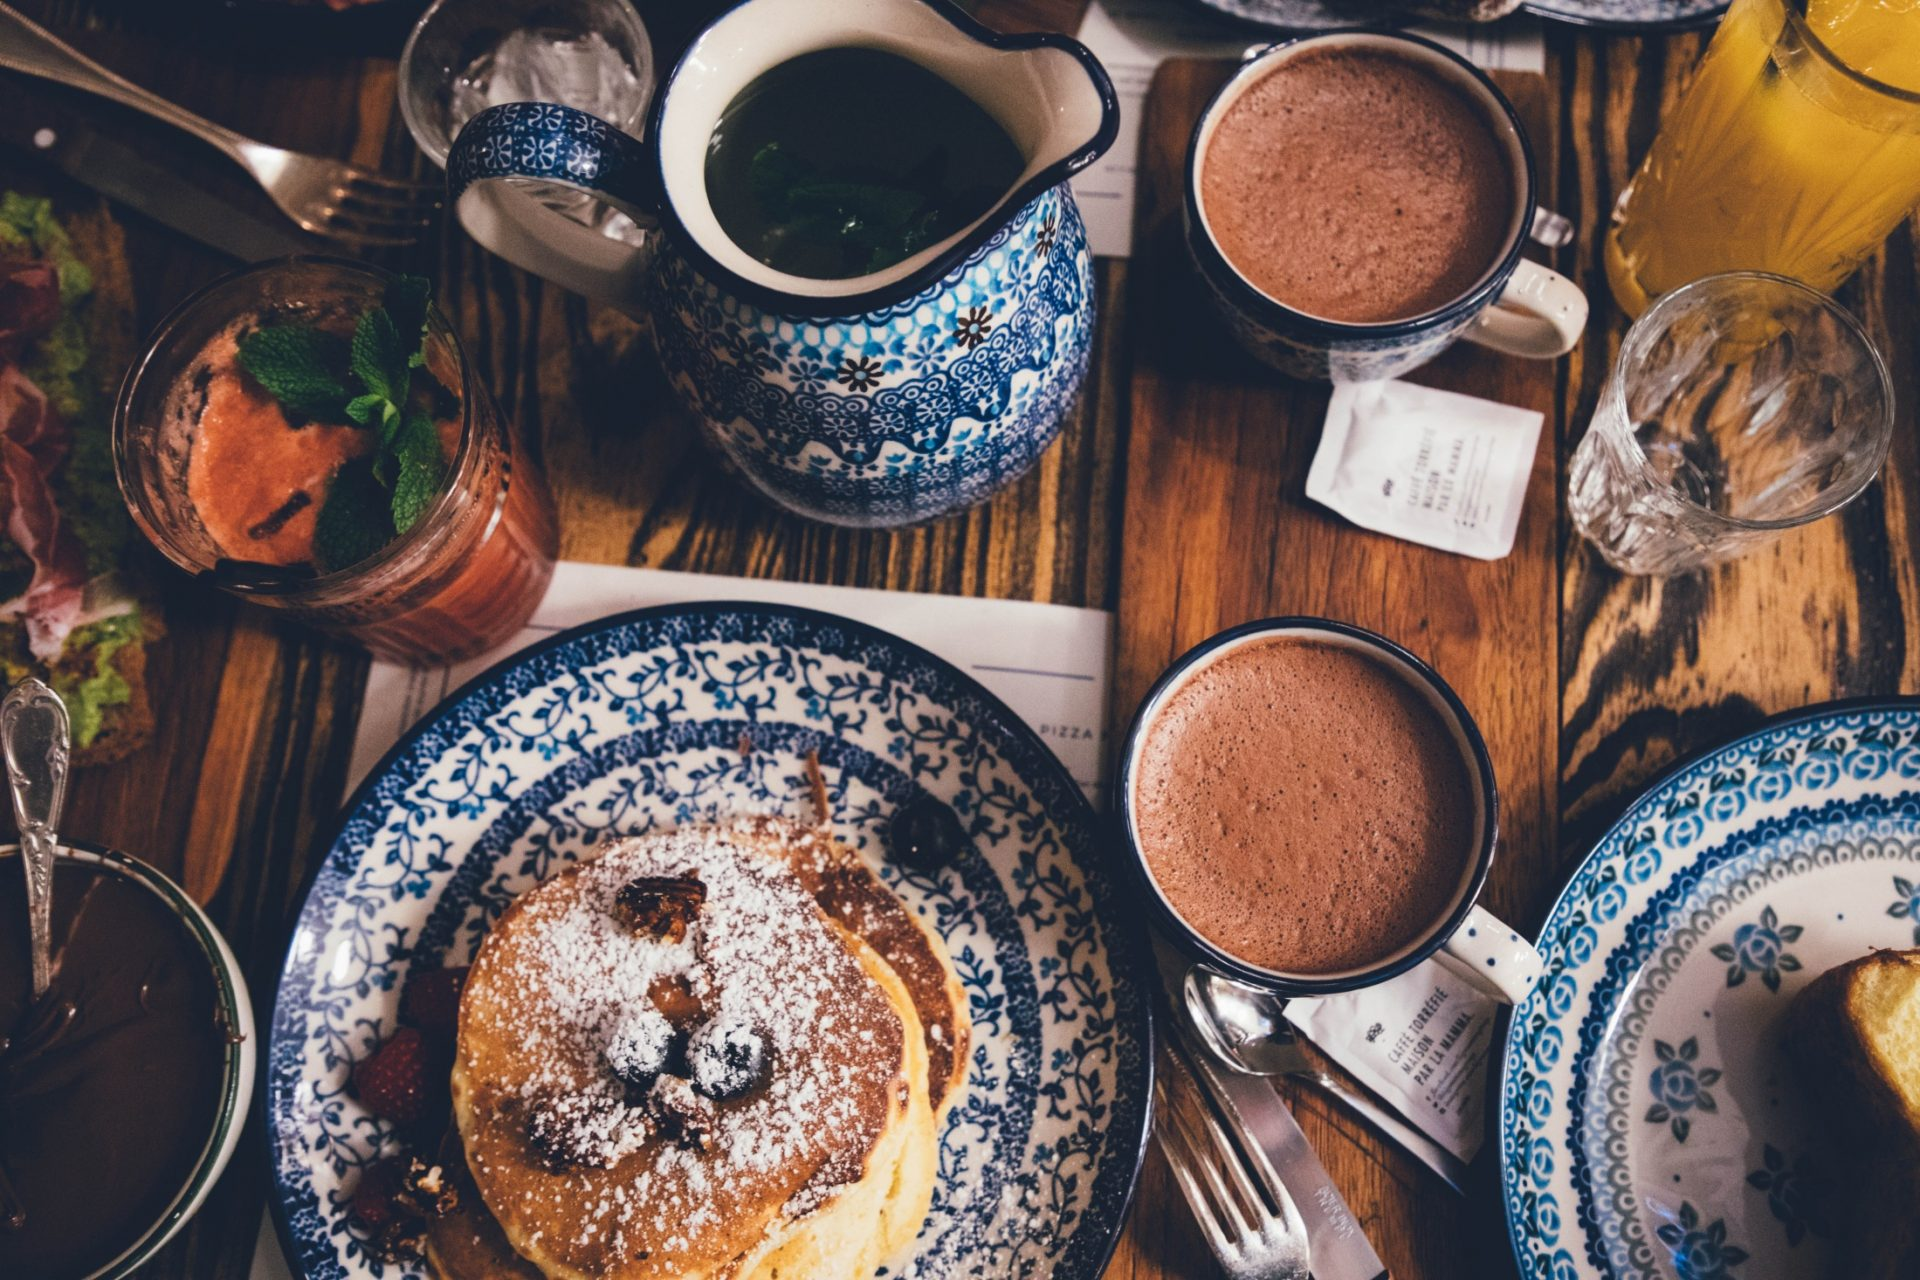 Pancakes and cacao on the table